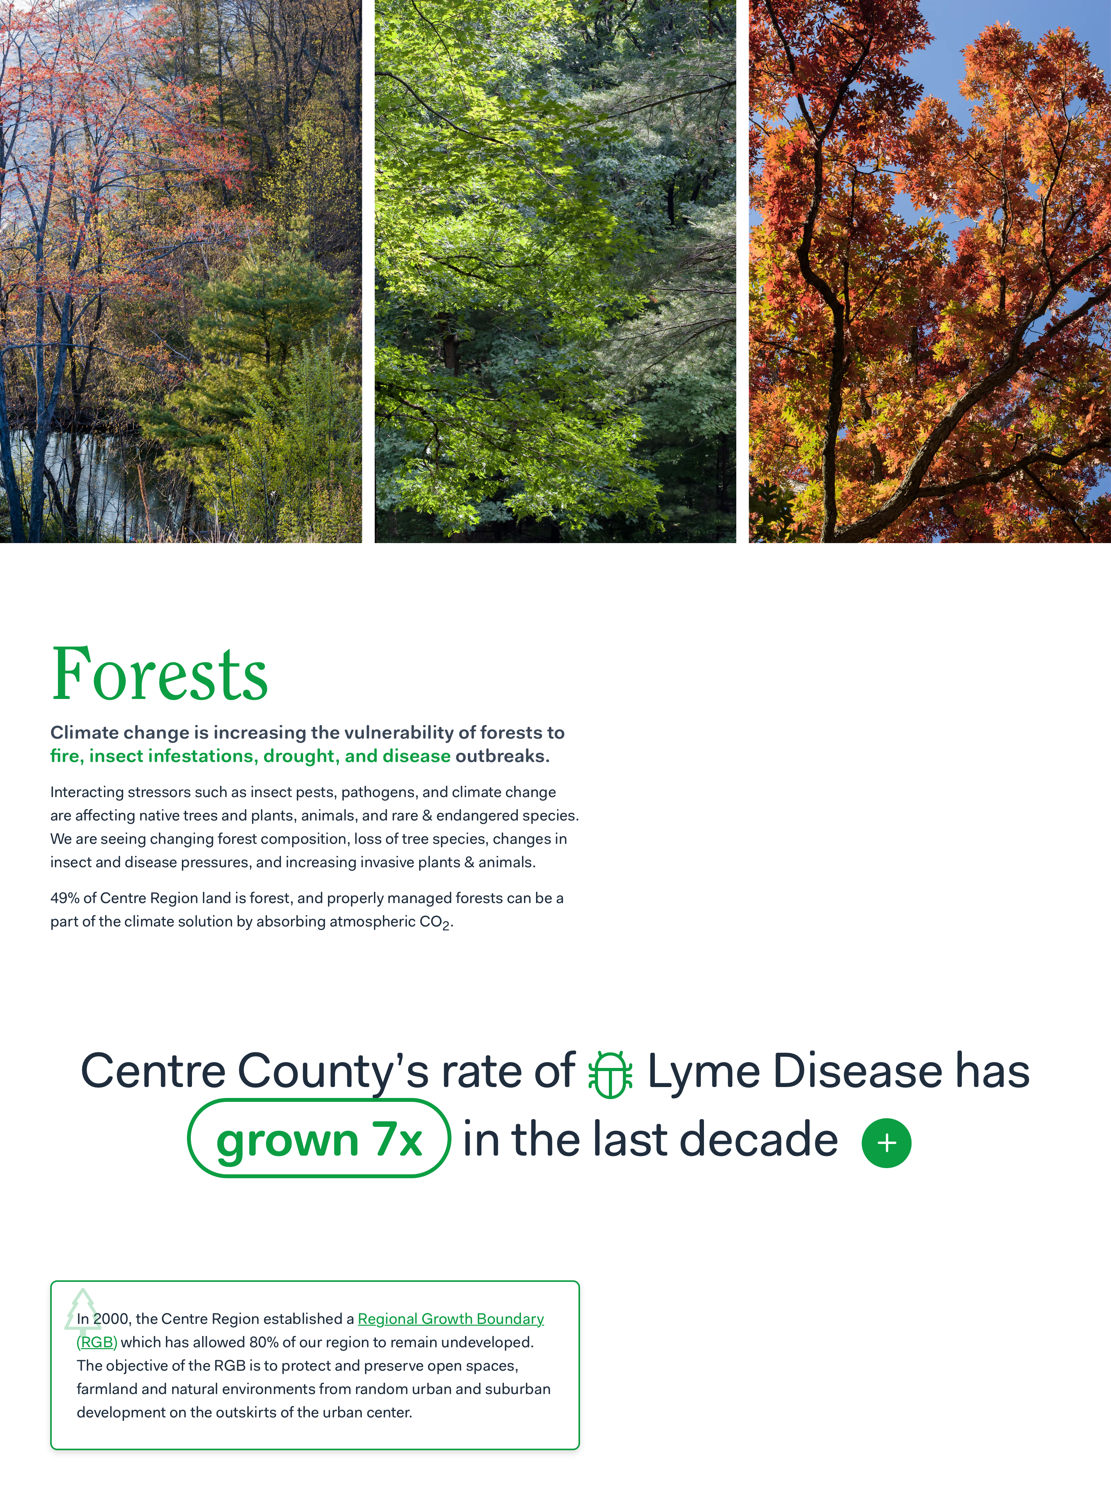 Screenshot of the Forests section of centresustains.com/climate